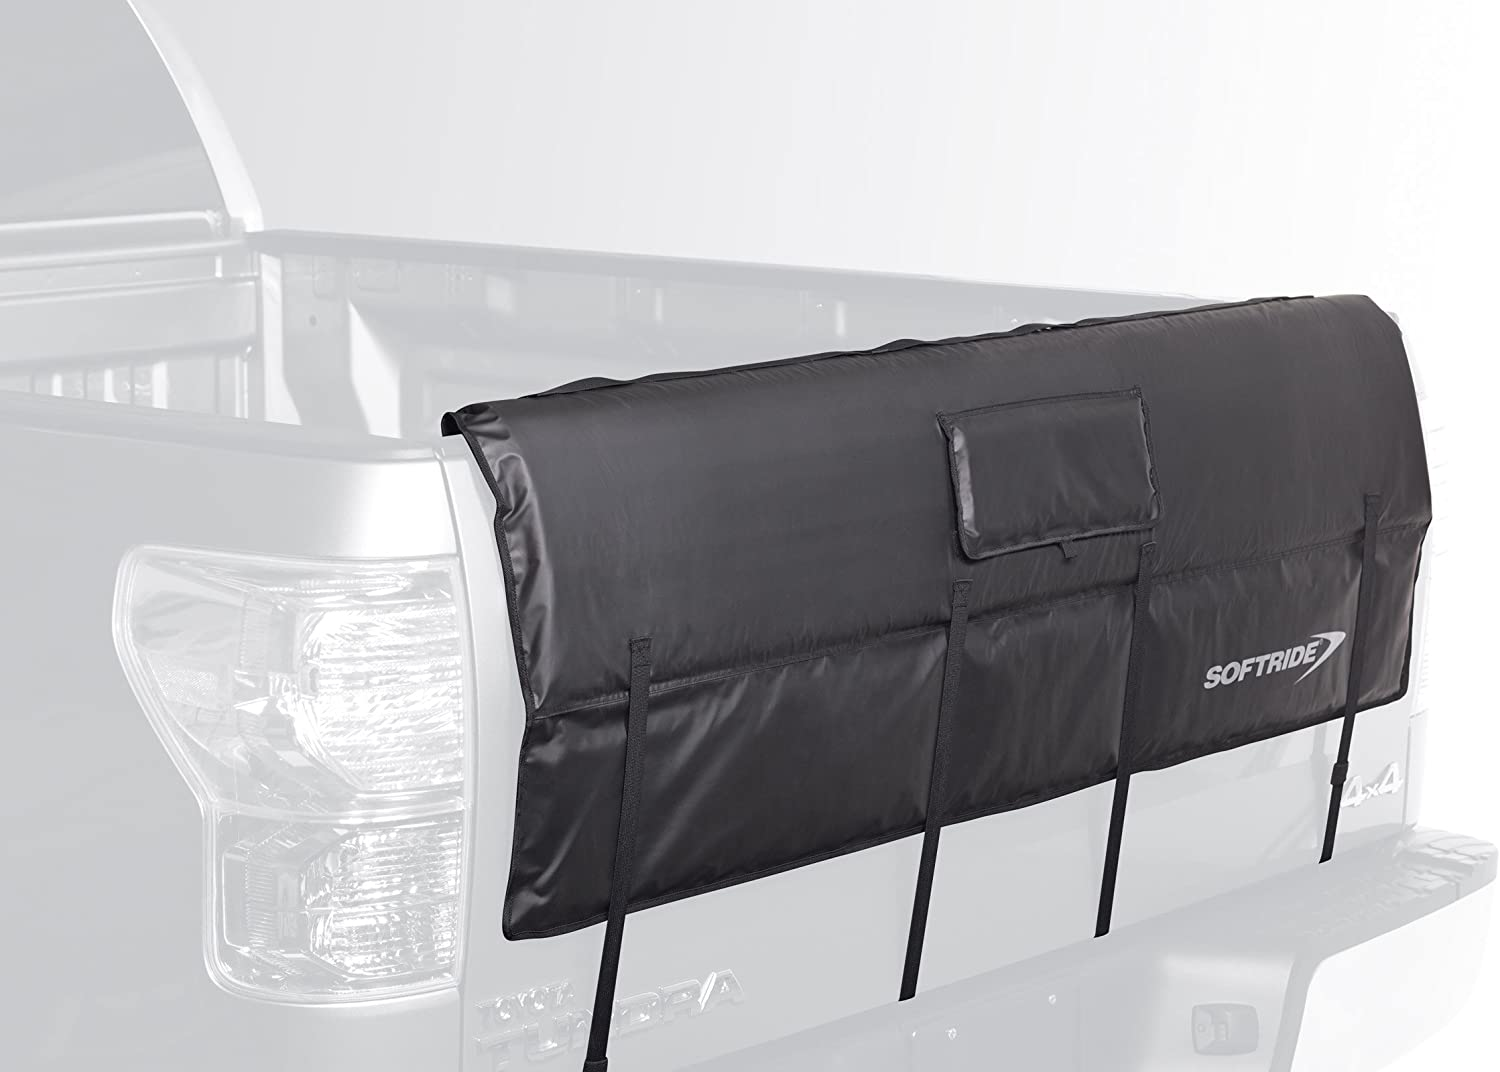 Softride 26457 a Pick-Up Shuttle Pad Tailgate Bike Rack